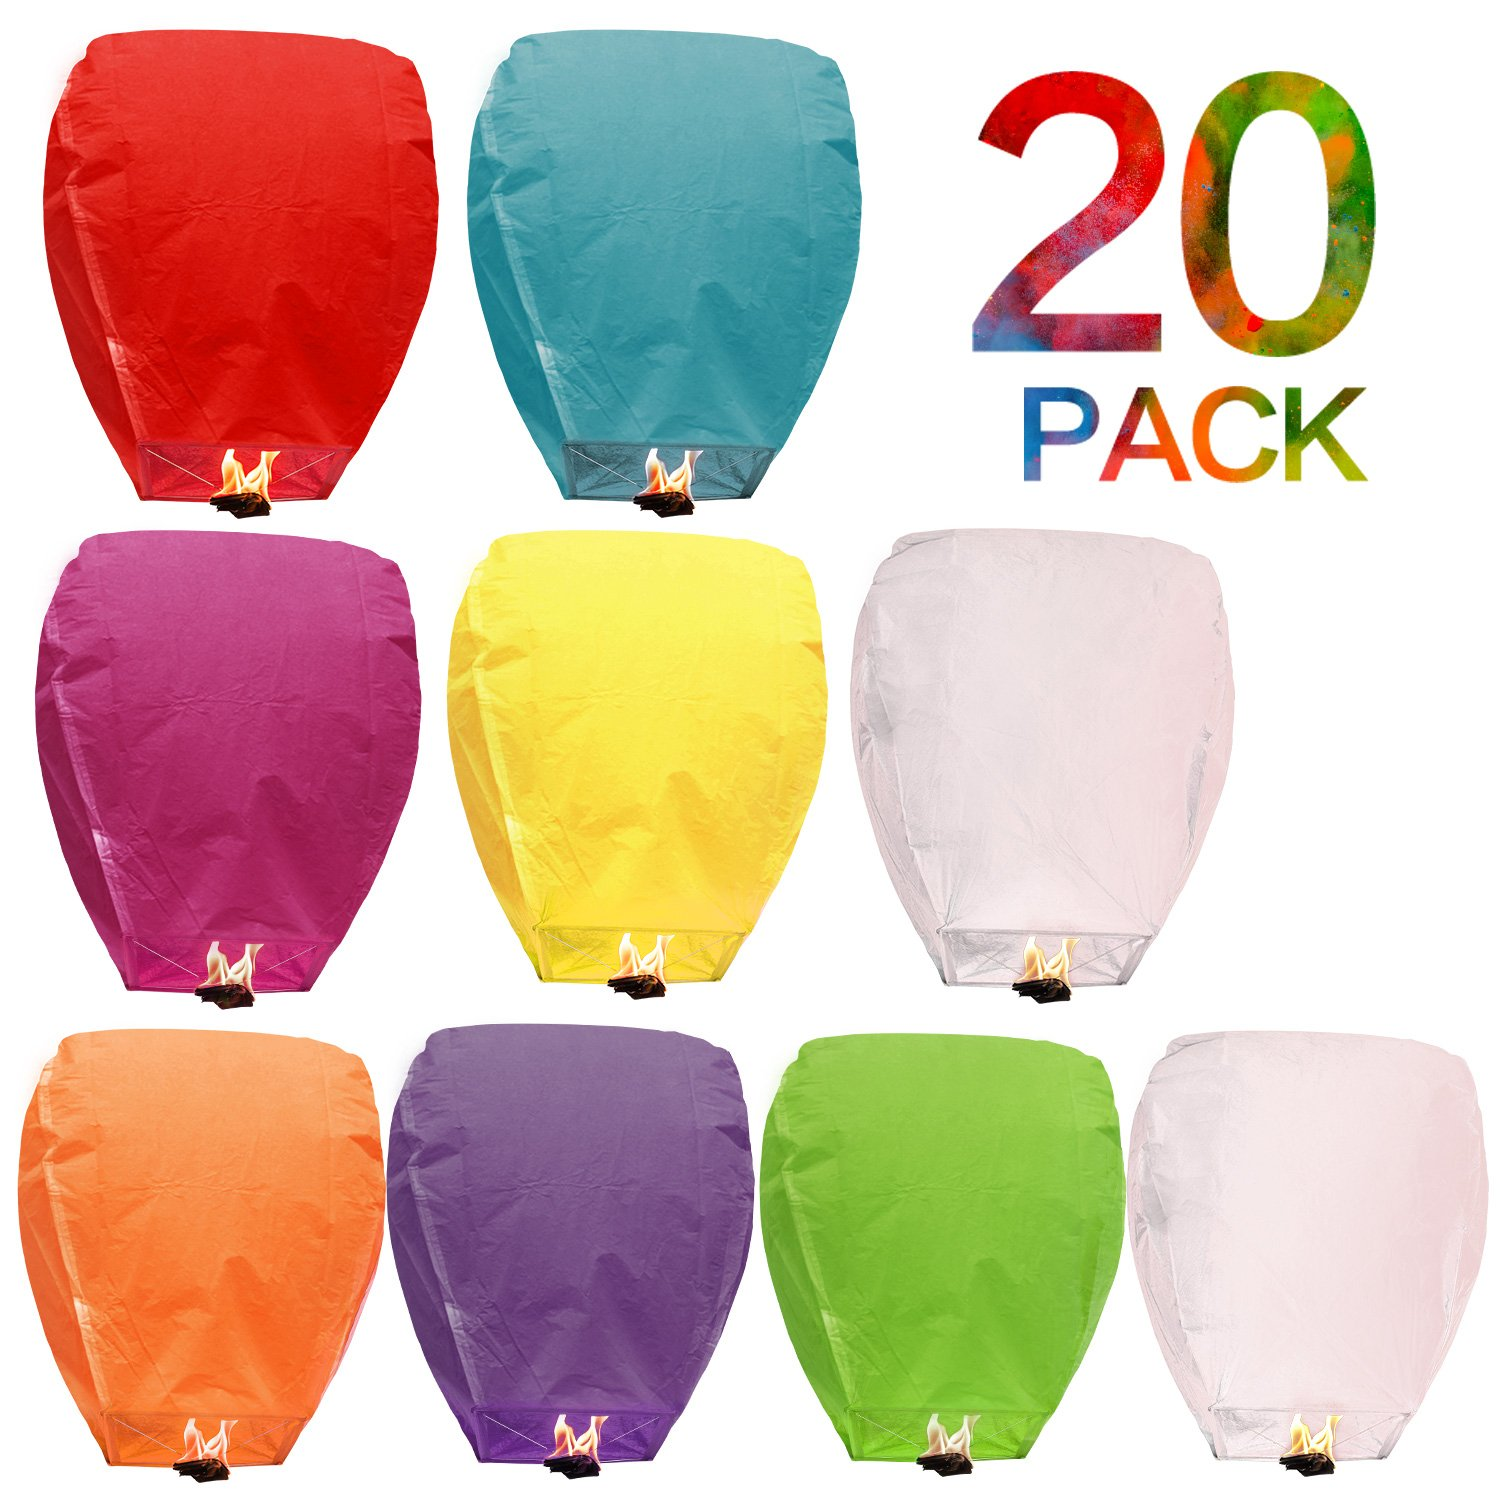 Flying Chinese Sky Lanterns 20 Pack 100% Biodegradable Eco Friendly and Fully Assembled Romantic Night Blue Red and Other Mixed Colors for Party Sea Beach Vacation Holiday by Battife